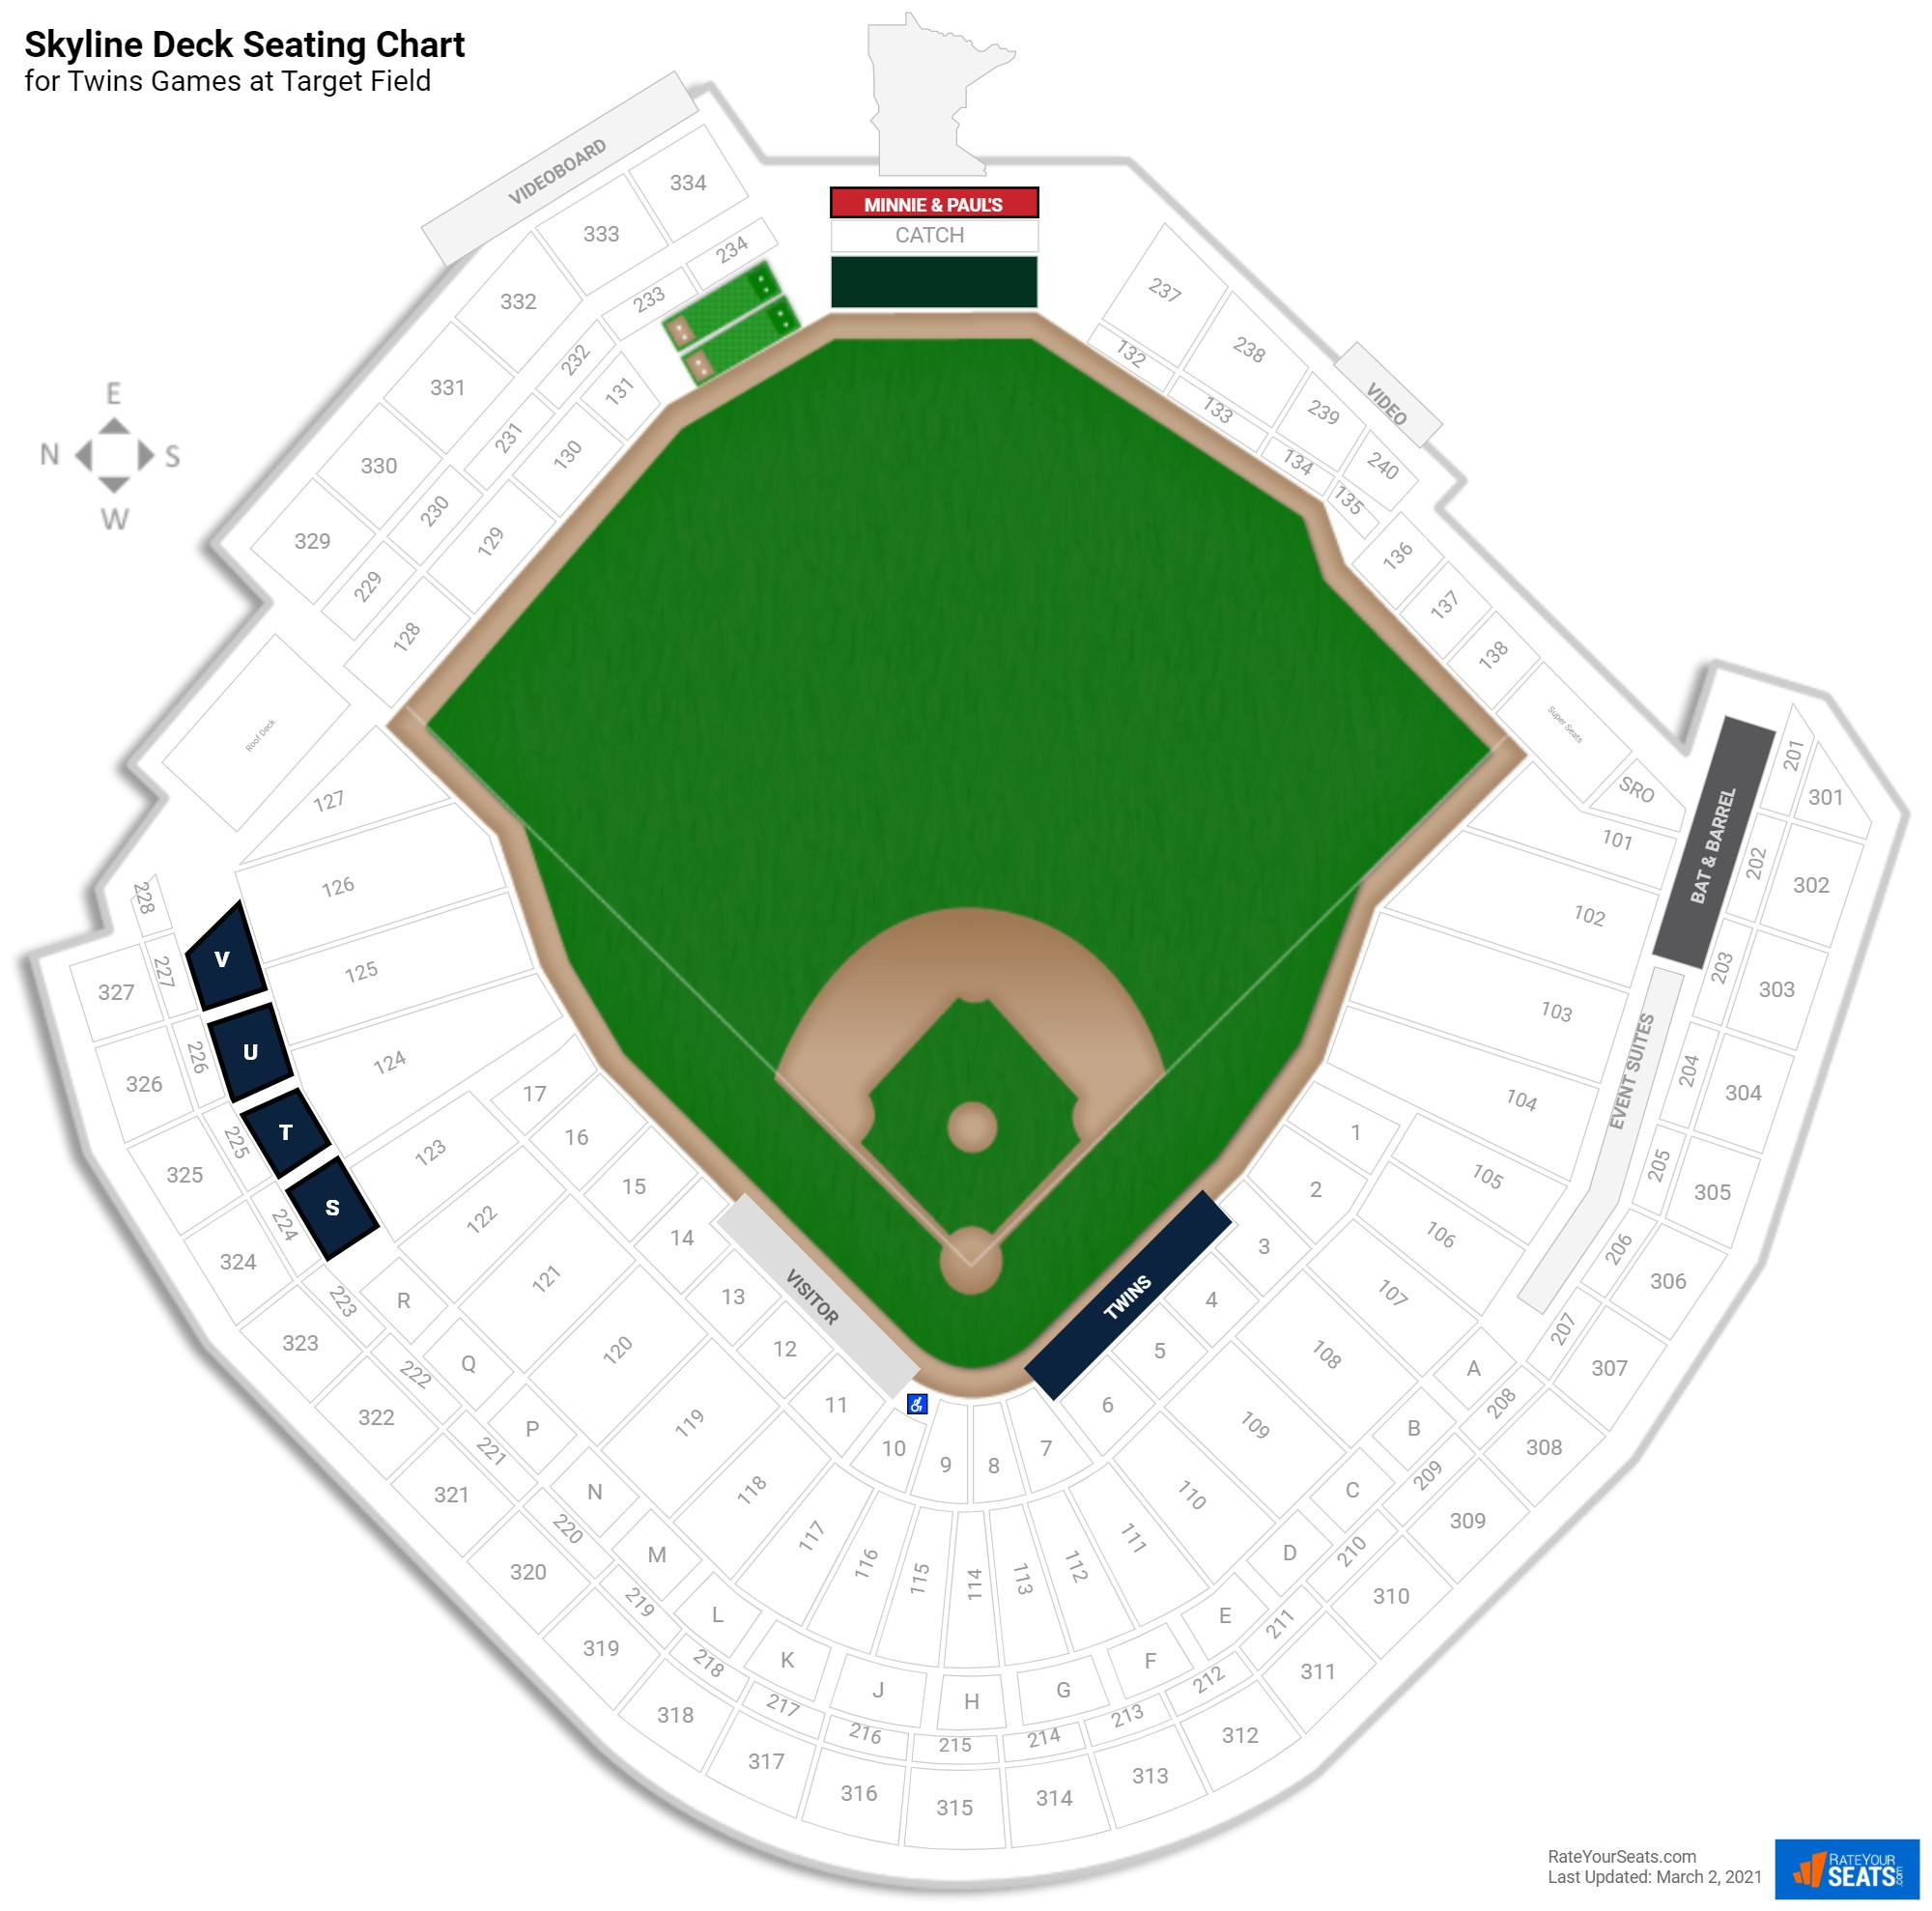 Target Field Skyline Deck seating chart